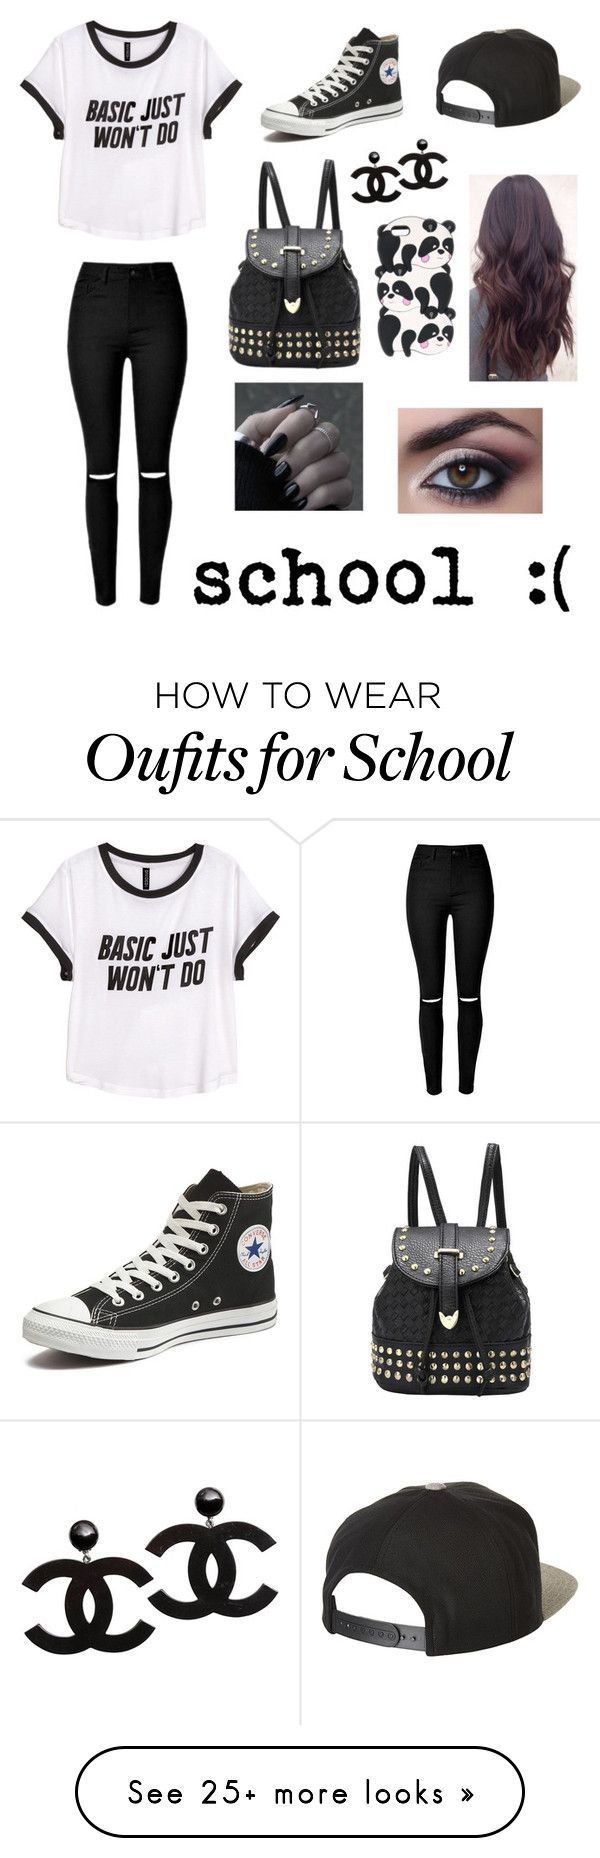 school :( by qveen-nayah on Polyvore featuring HM, Converse and Brixton